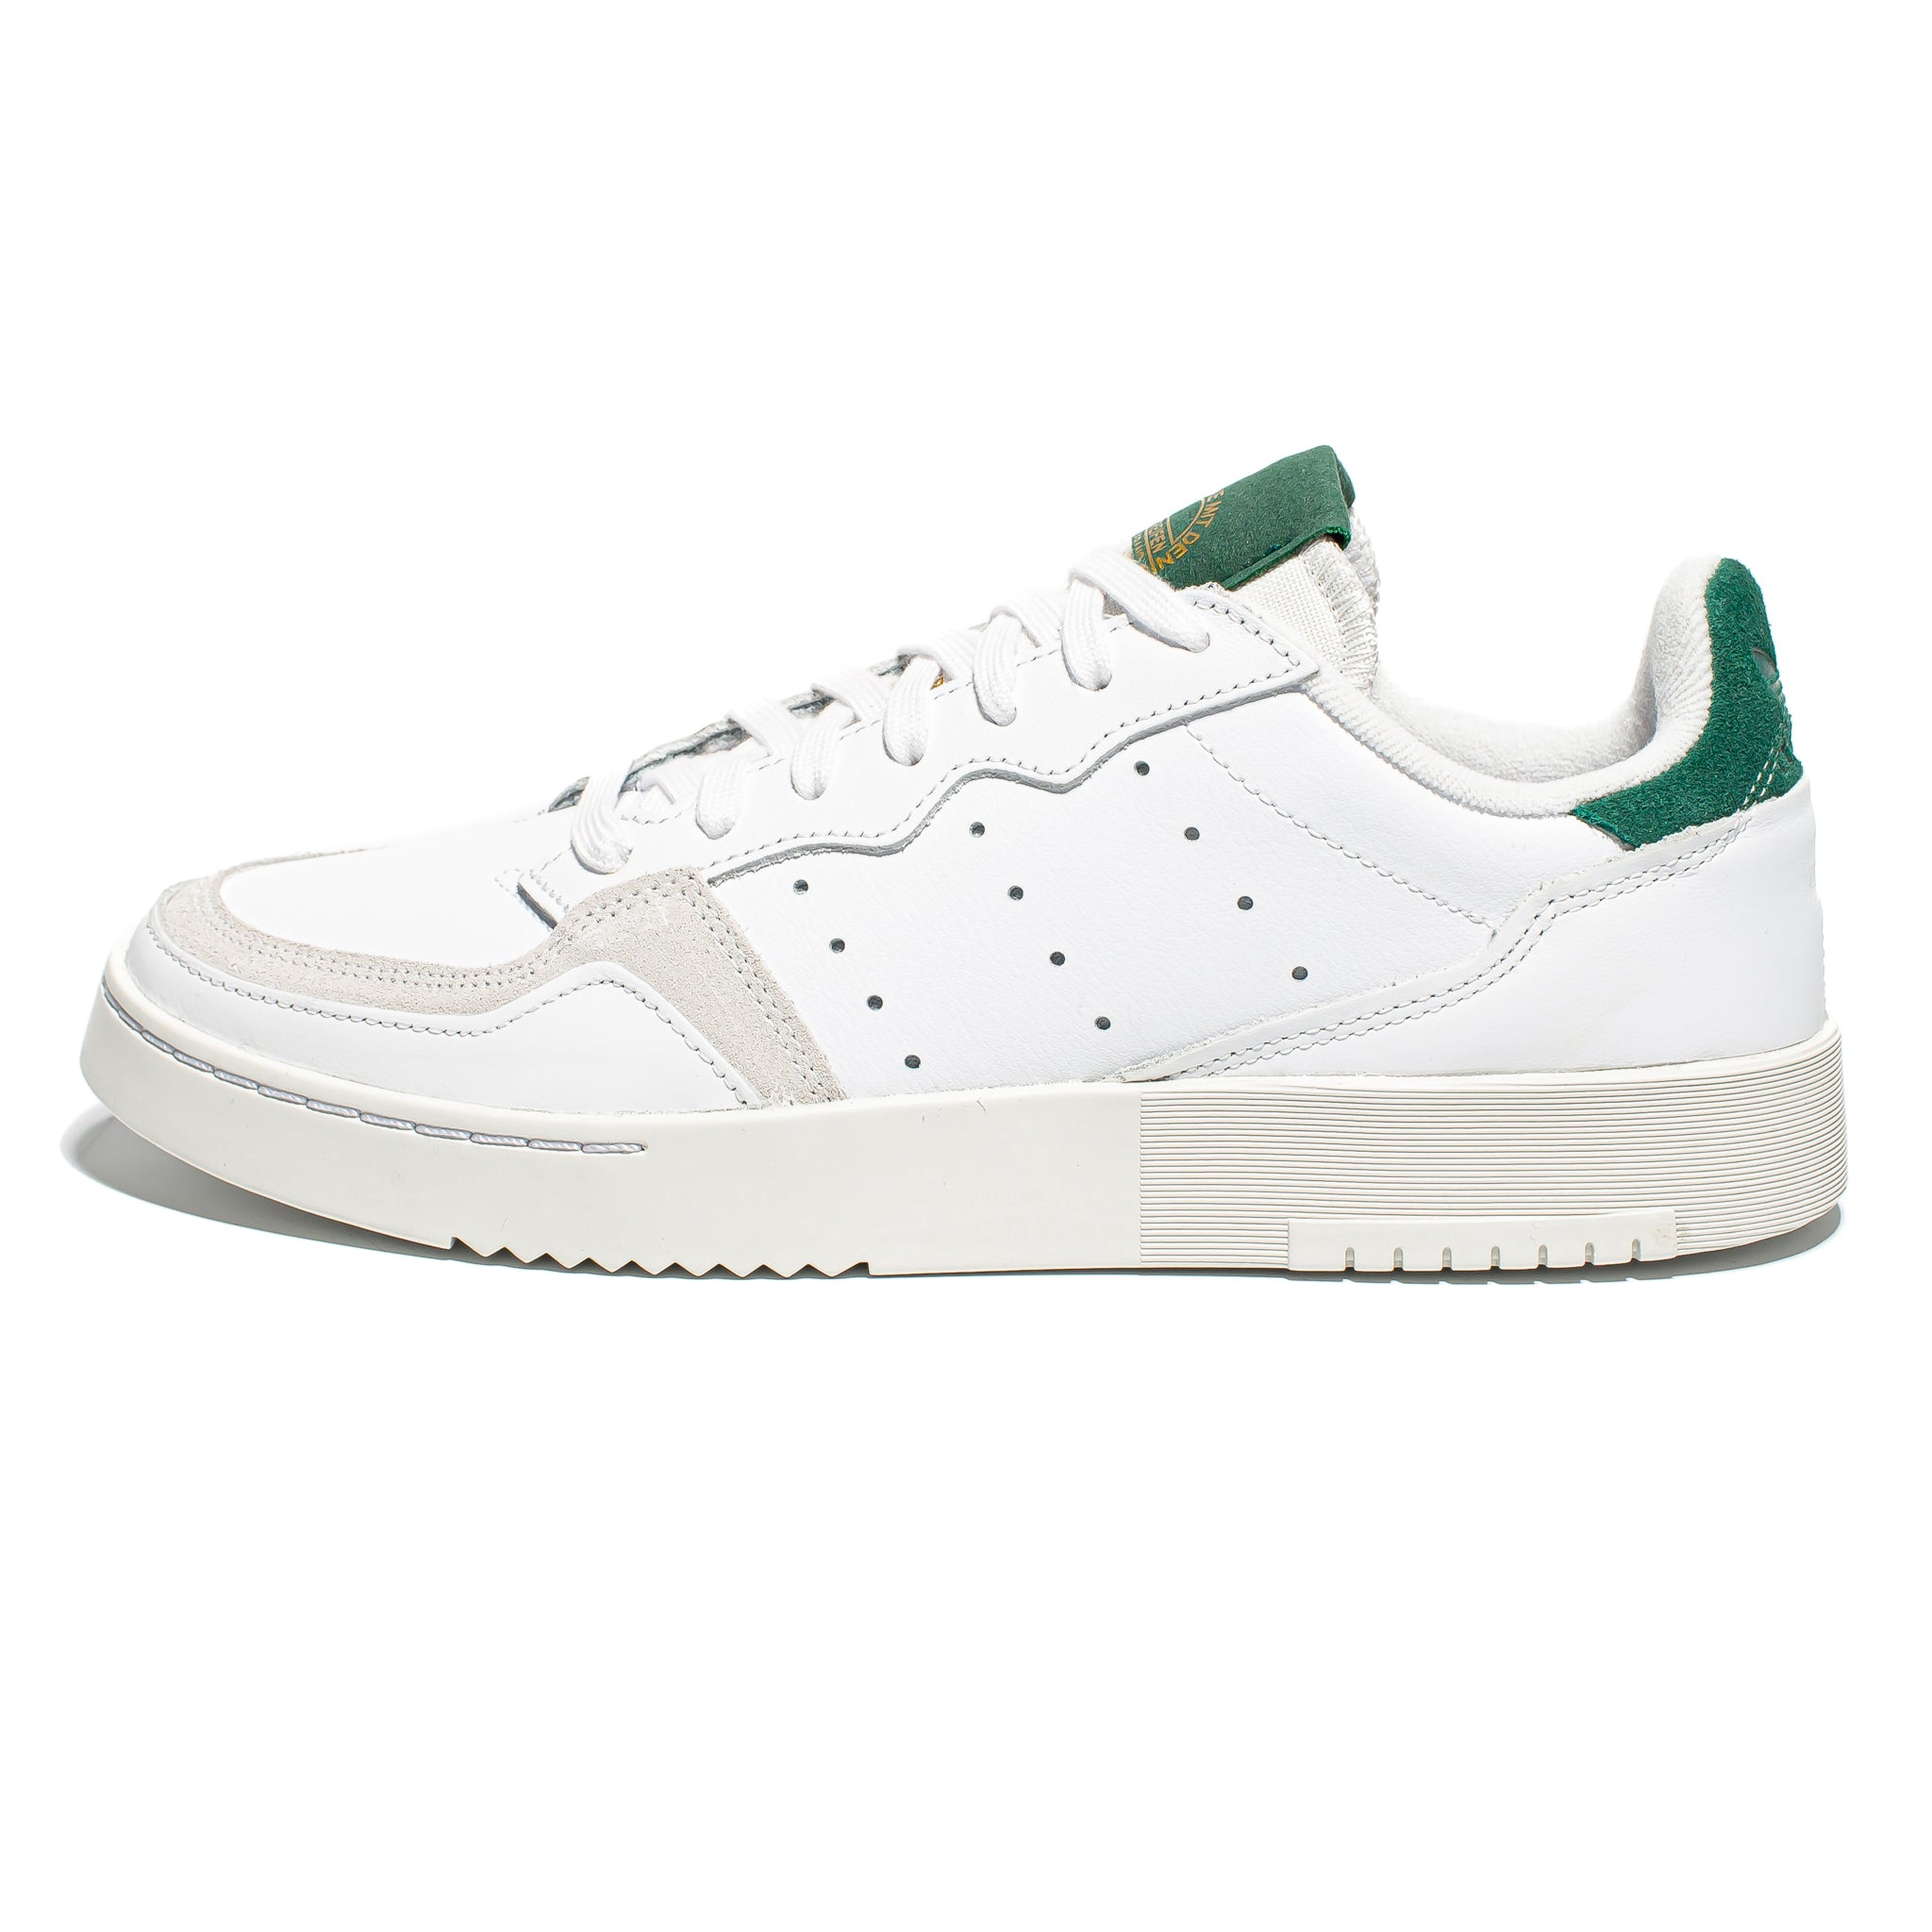 Adidas Supercourt Cloud White/Collegiate Green